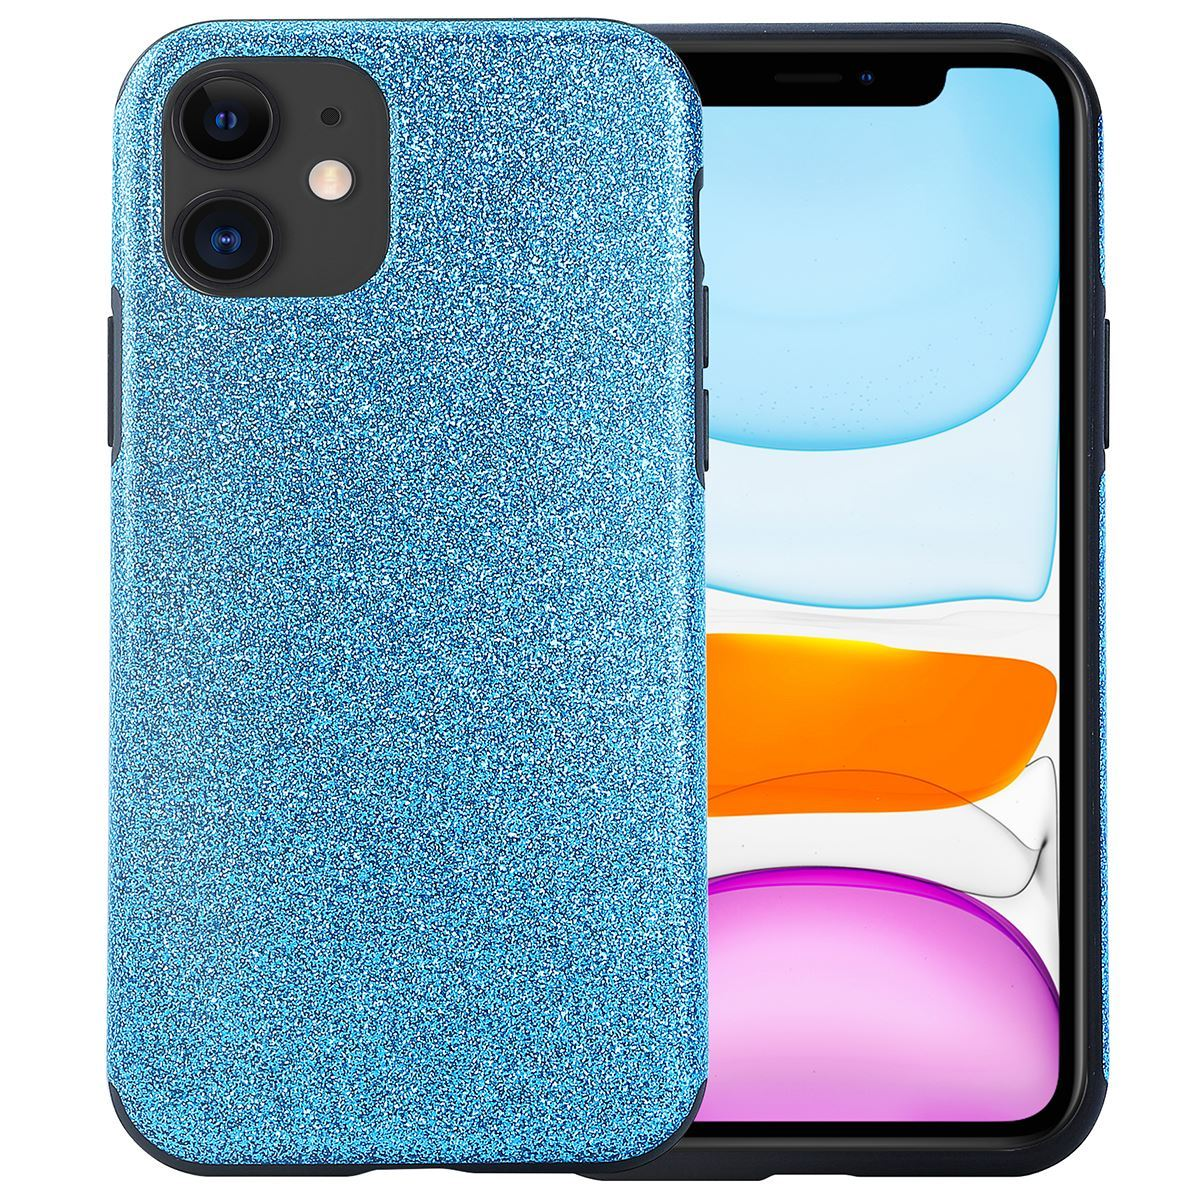 iPhone 11 Case Silicone Glitter Back Cover - Blue